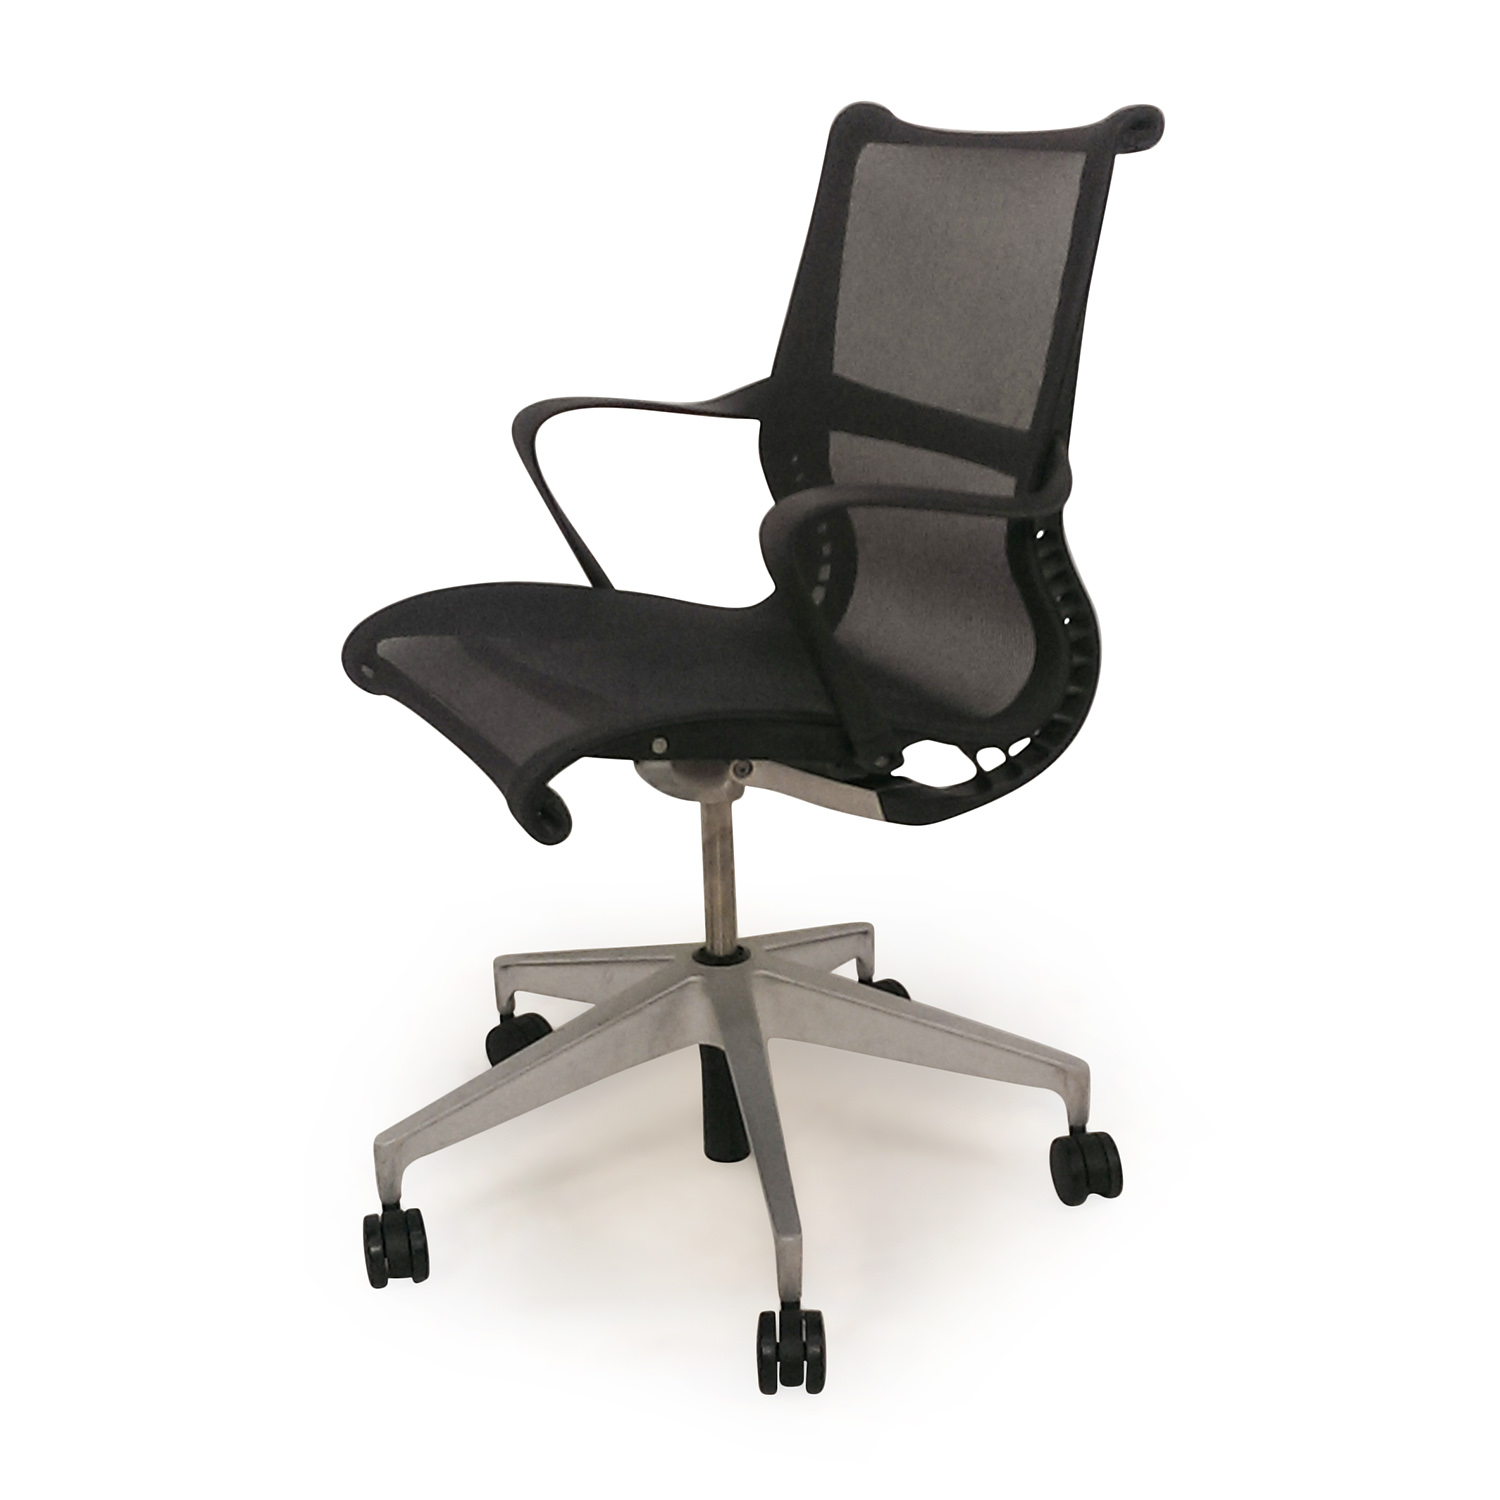 ergonomic mesh chair from emperor small space chairs 90 off computer